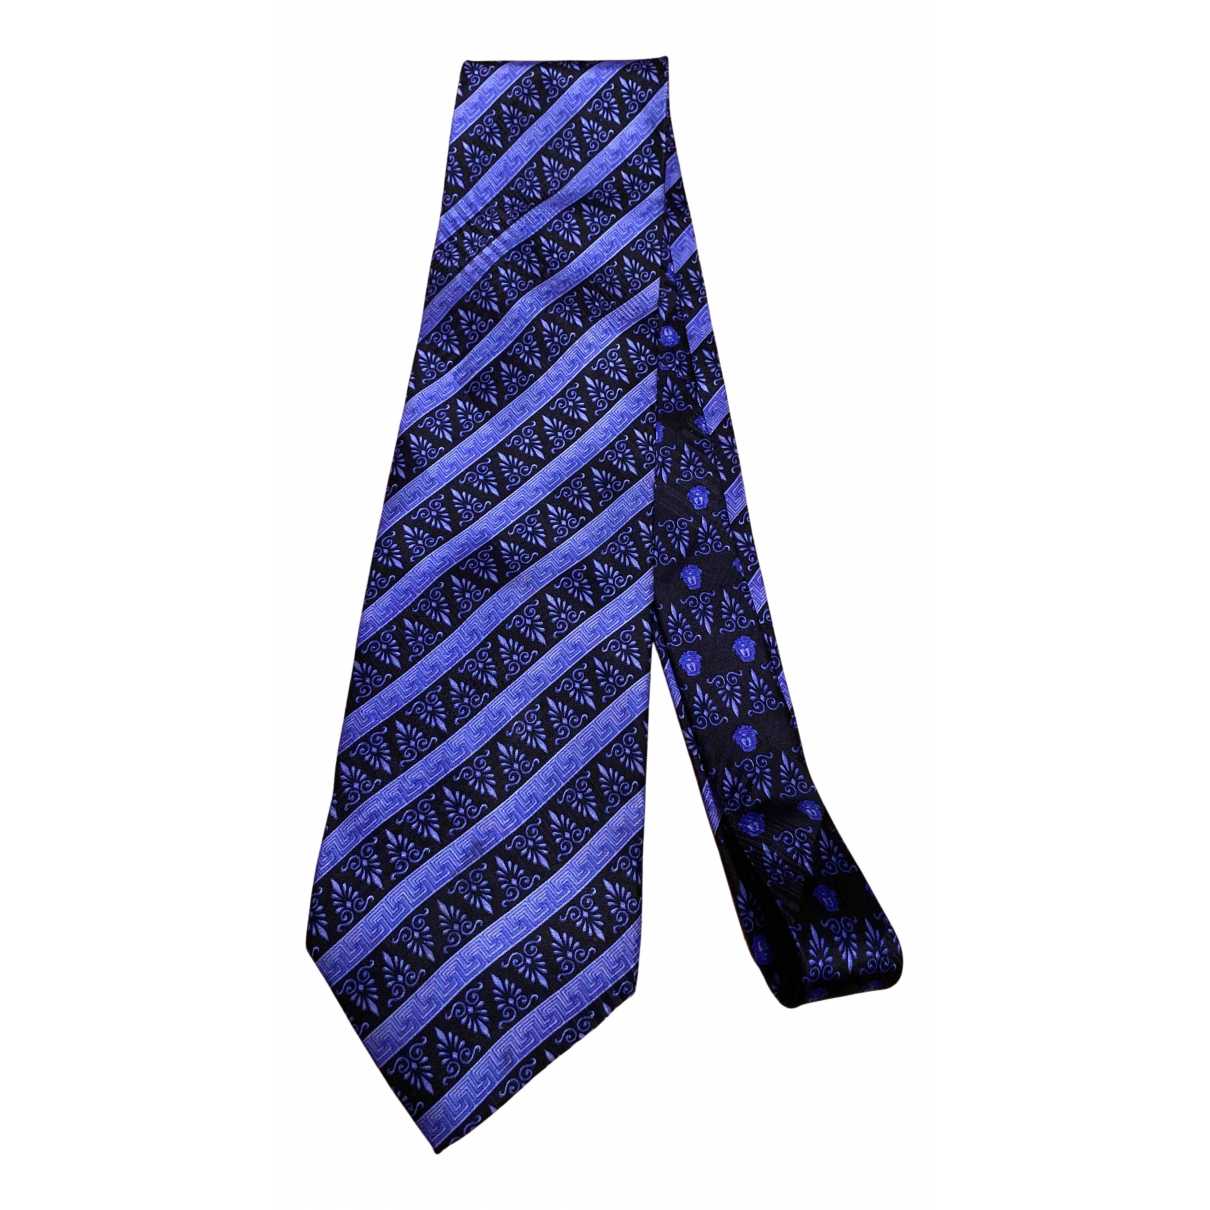 Gianni Versace N Blue Silk Ties for Men N